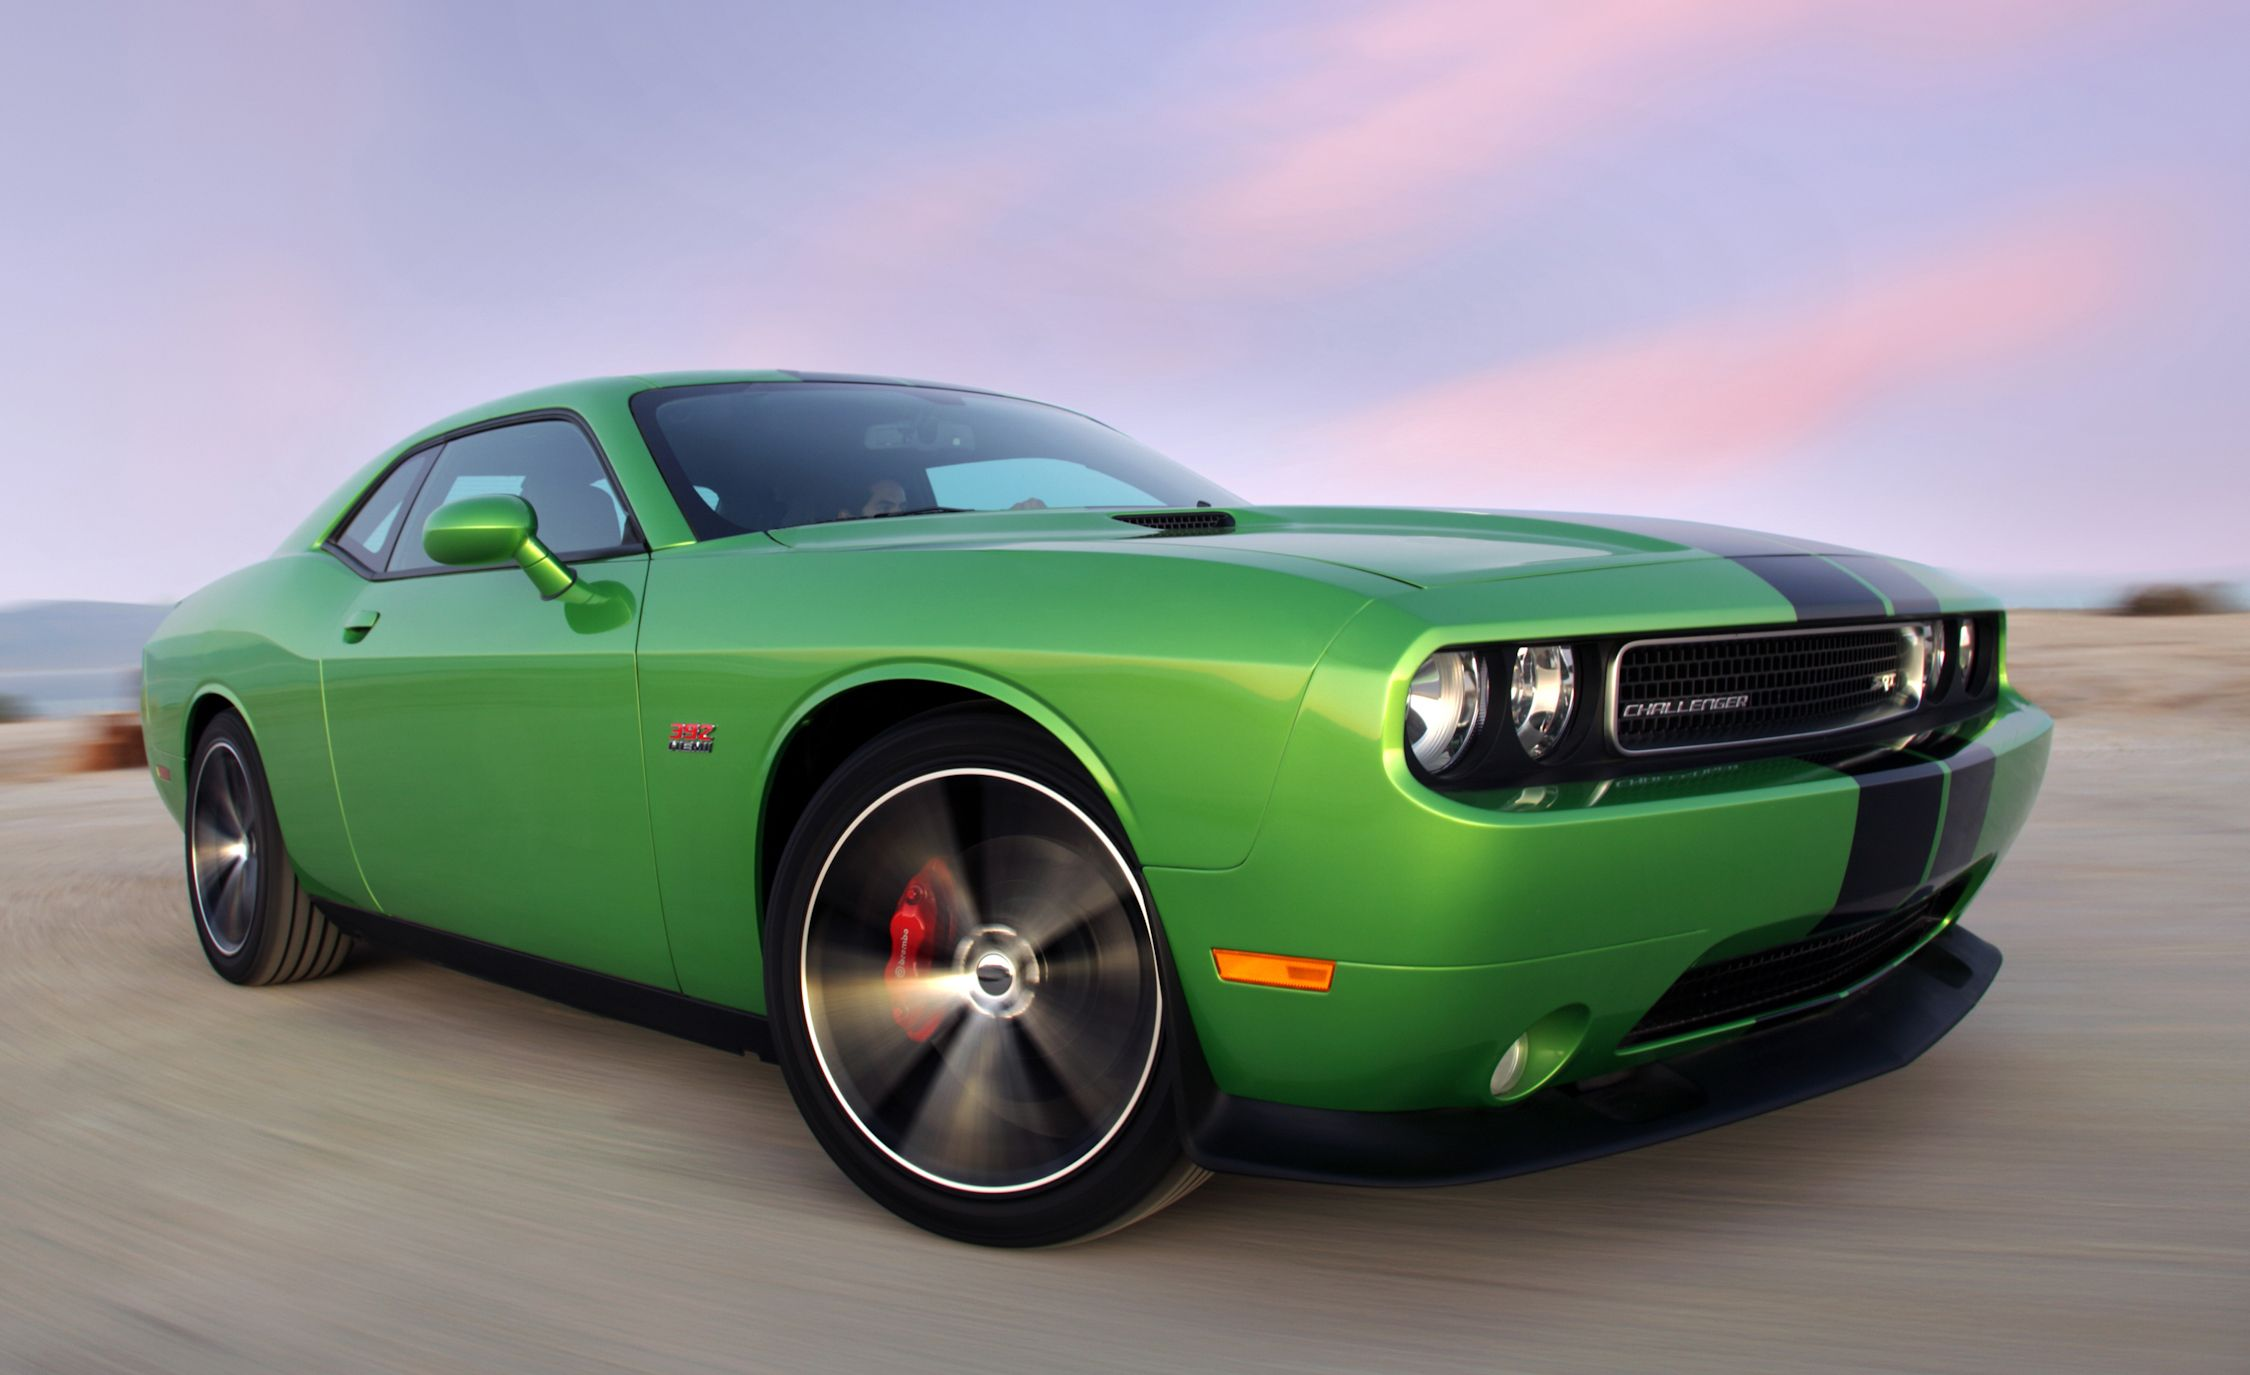 2011 Dodge Challenger Official Photos and Info